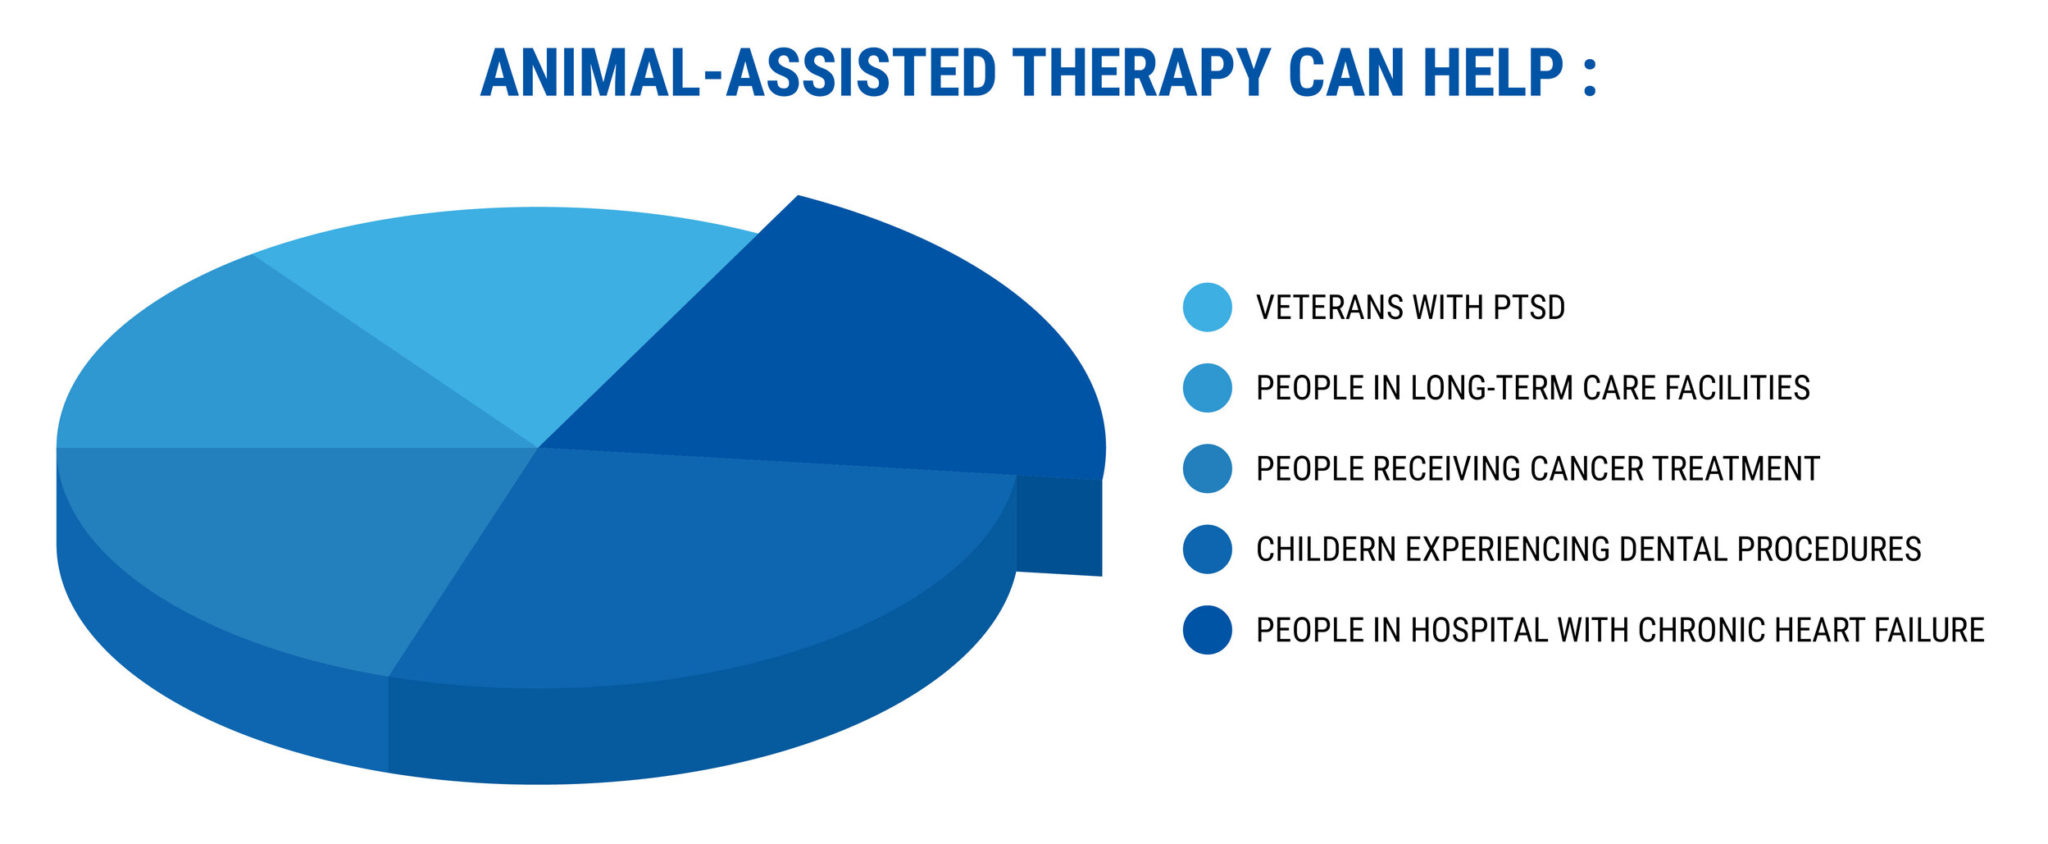 ANIMAL-ASSISTED THERAPY CAN HELP